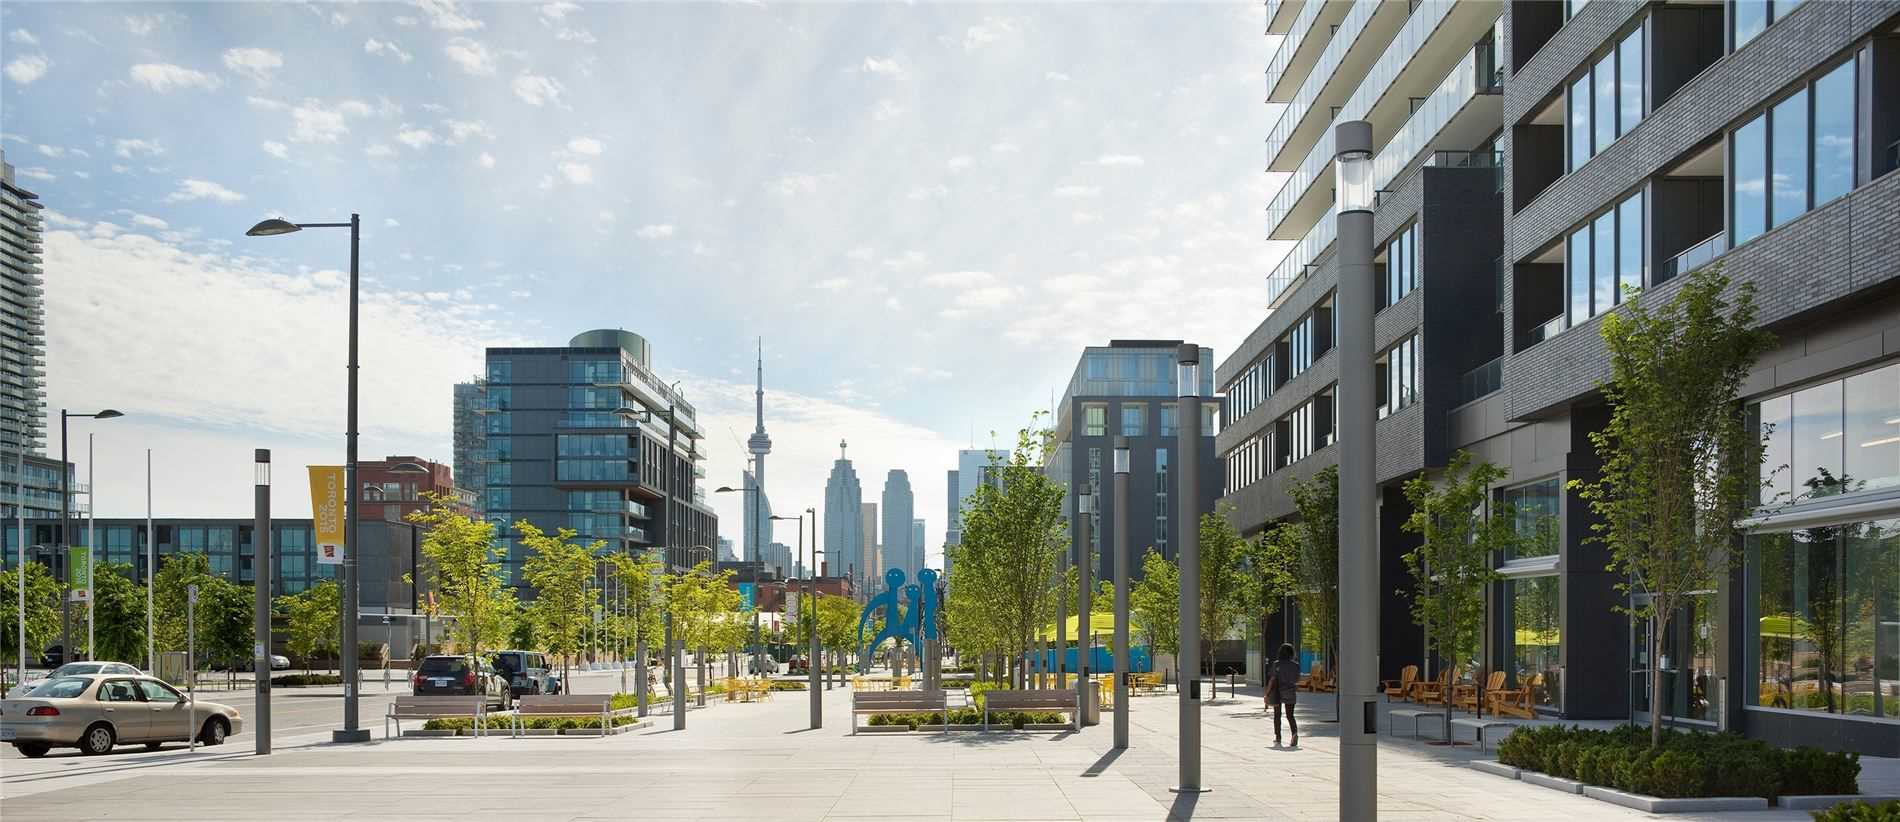 465 Front St 11D, Waterfront Communities C8, Toronto, Ontario M5A1G9, ,Commercial/retail,For Lease,Front,C4879541